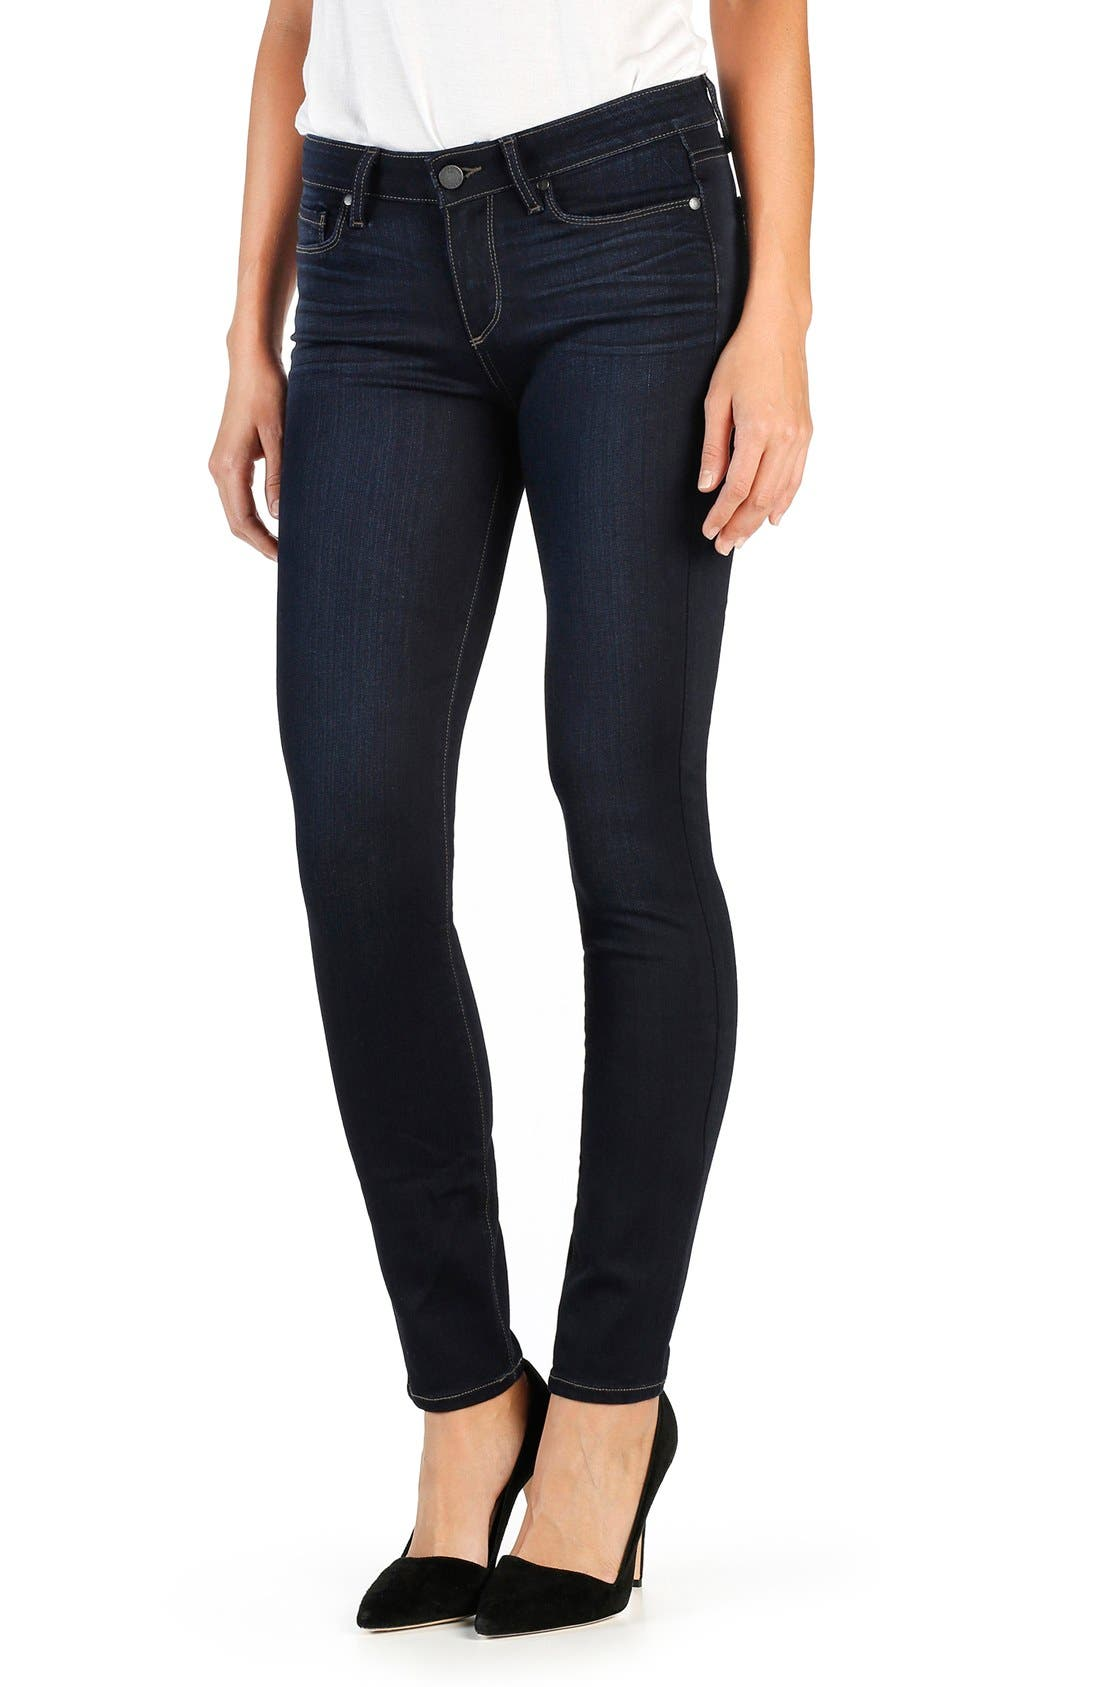 Main Image - PAIGE Transcend Verdugo Ankle Ultra Skinny Jeans (Ellora)